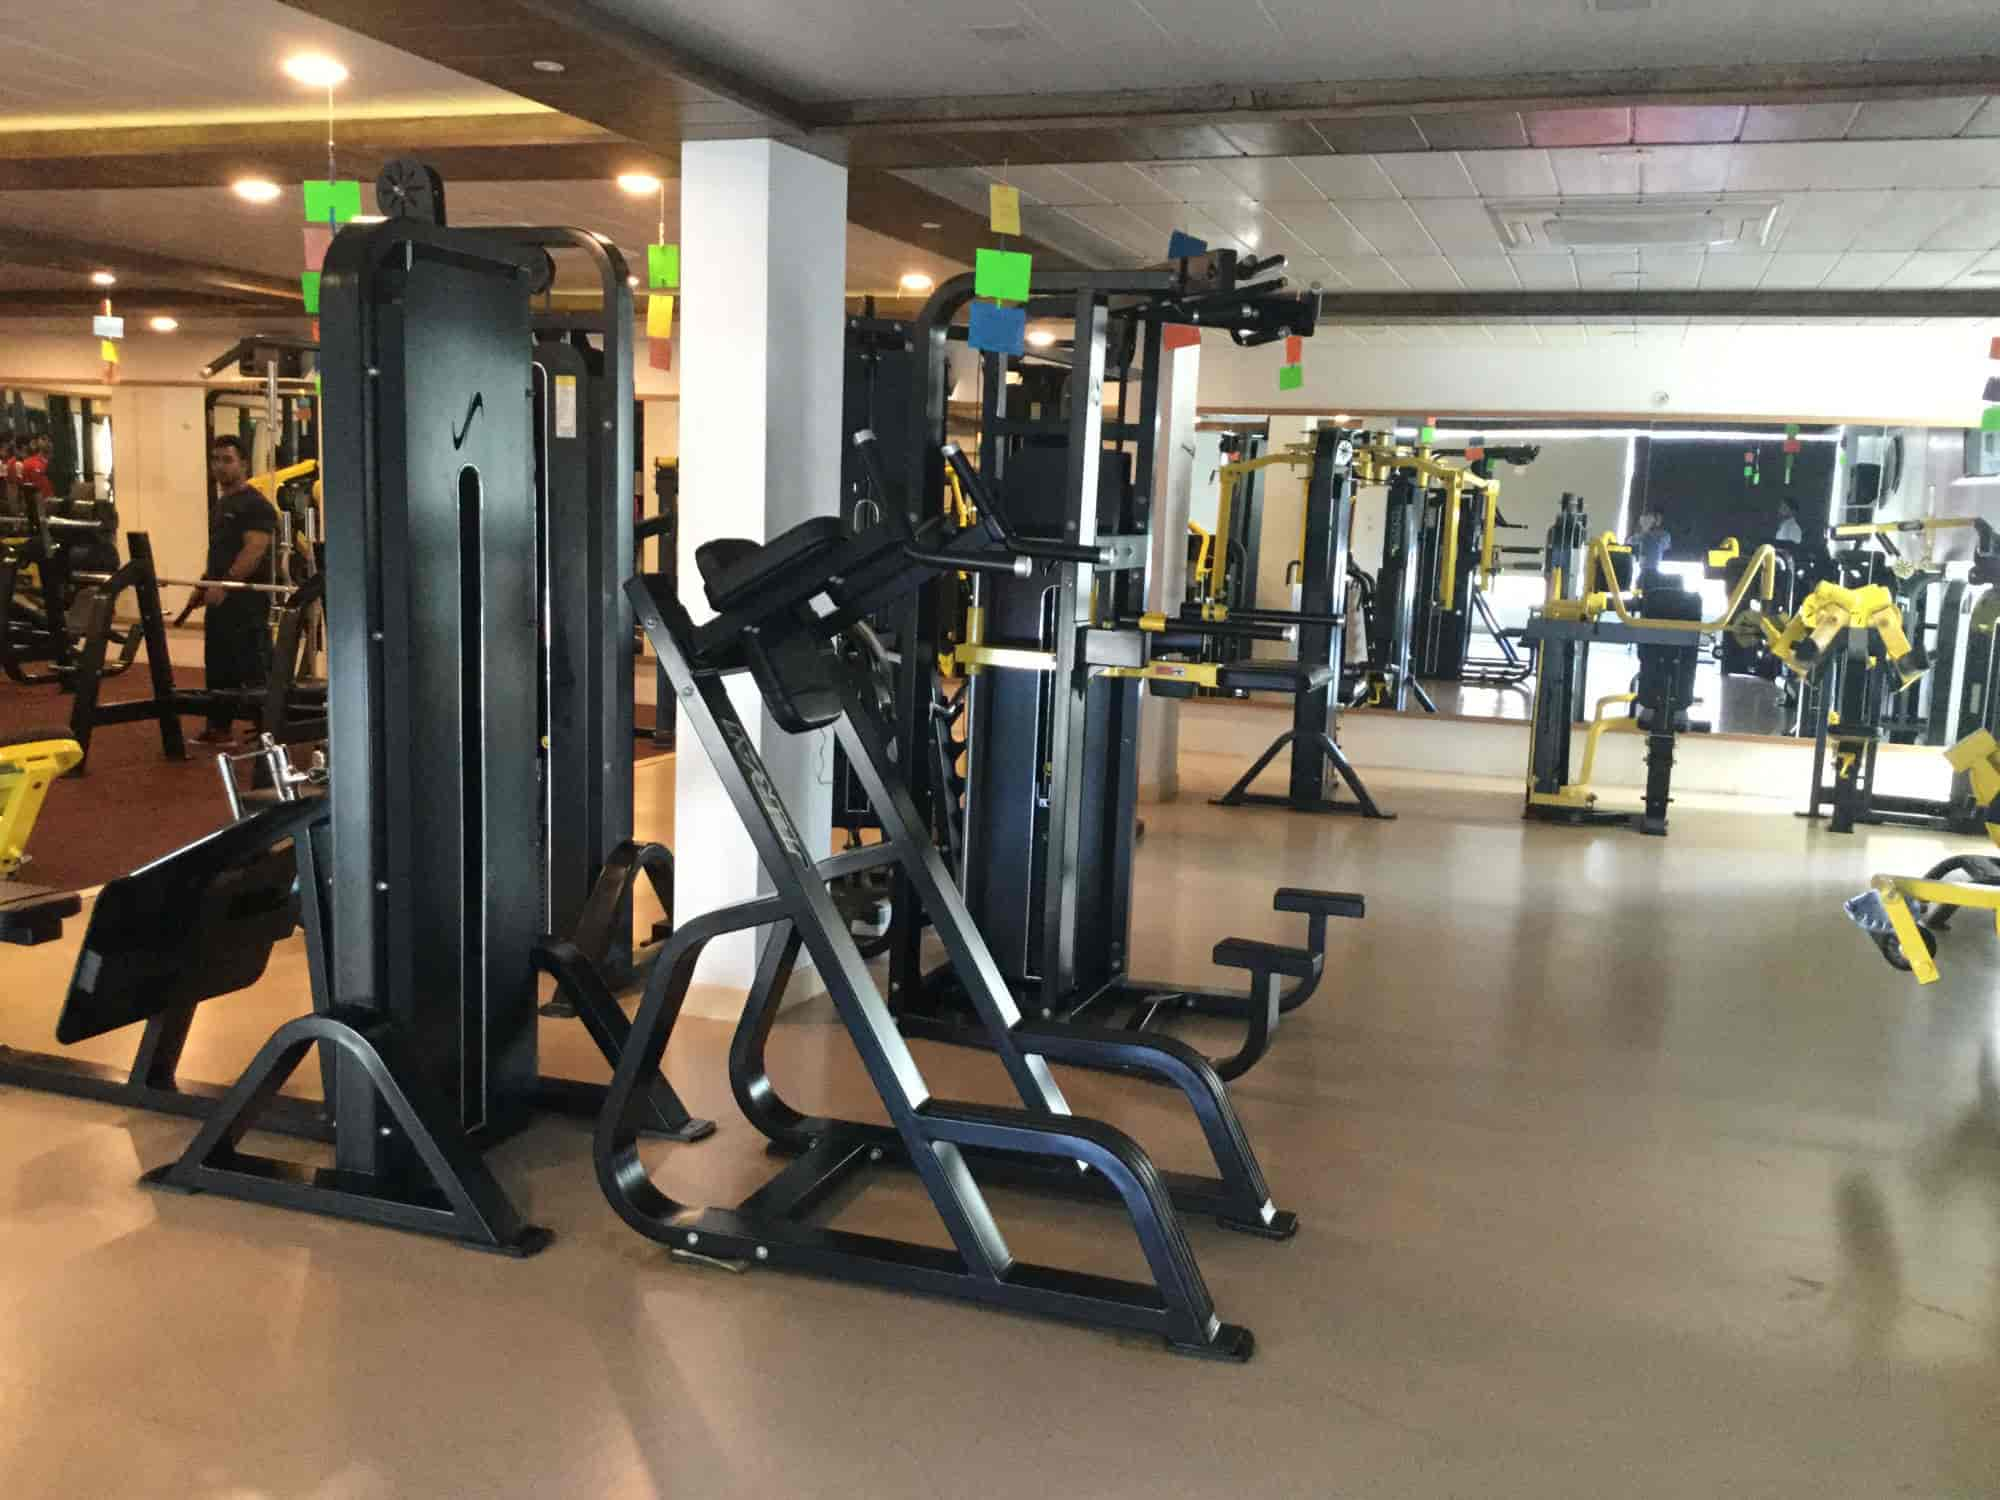 Fusion fitness gomti nagar gyms in lucknow justdial